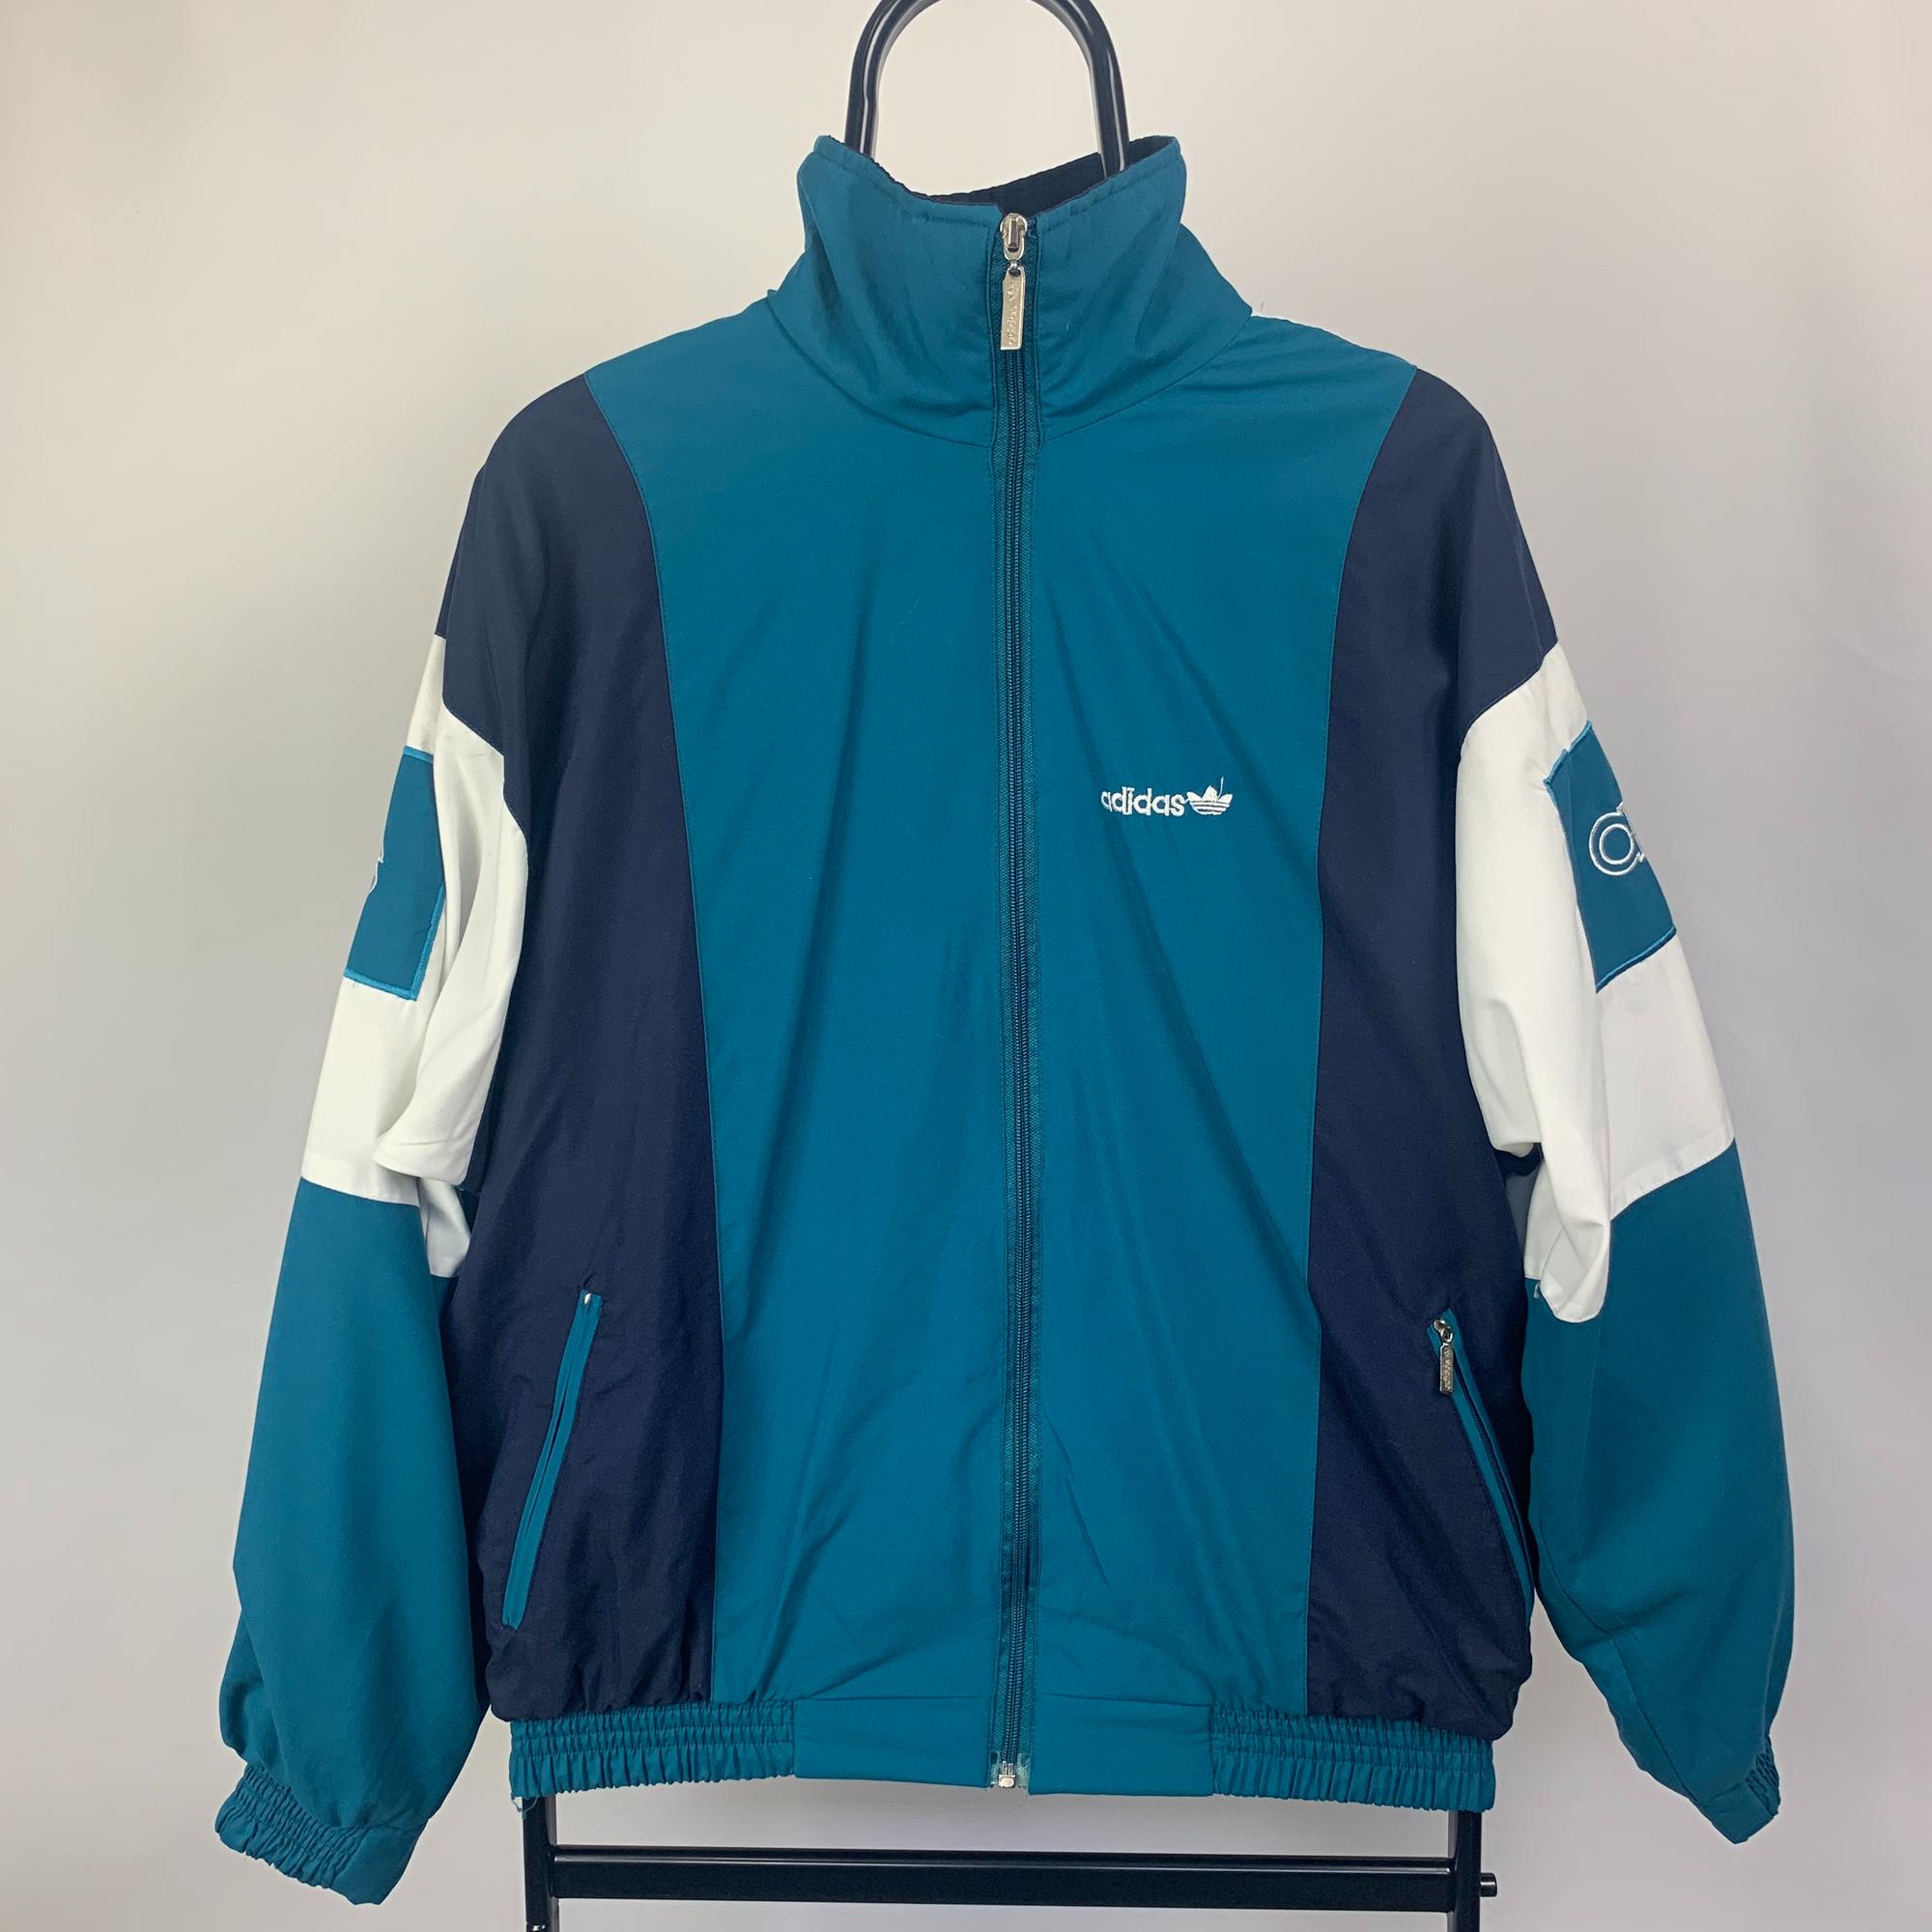 Vintage Adidas Track Jacket in Turquoise - Men's Small/Women's Medium